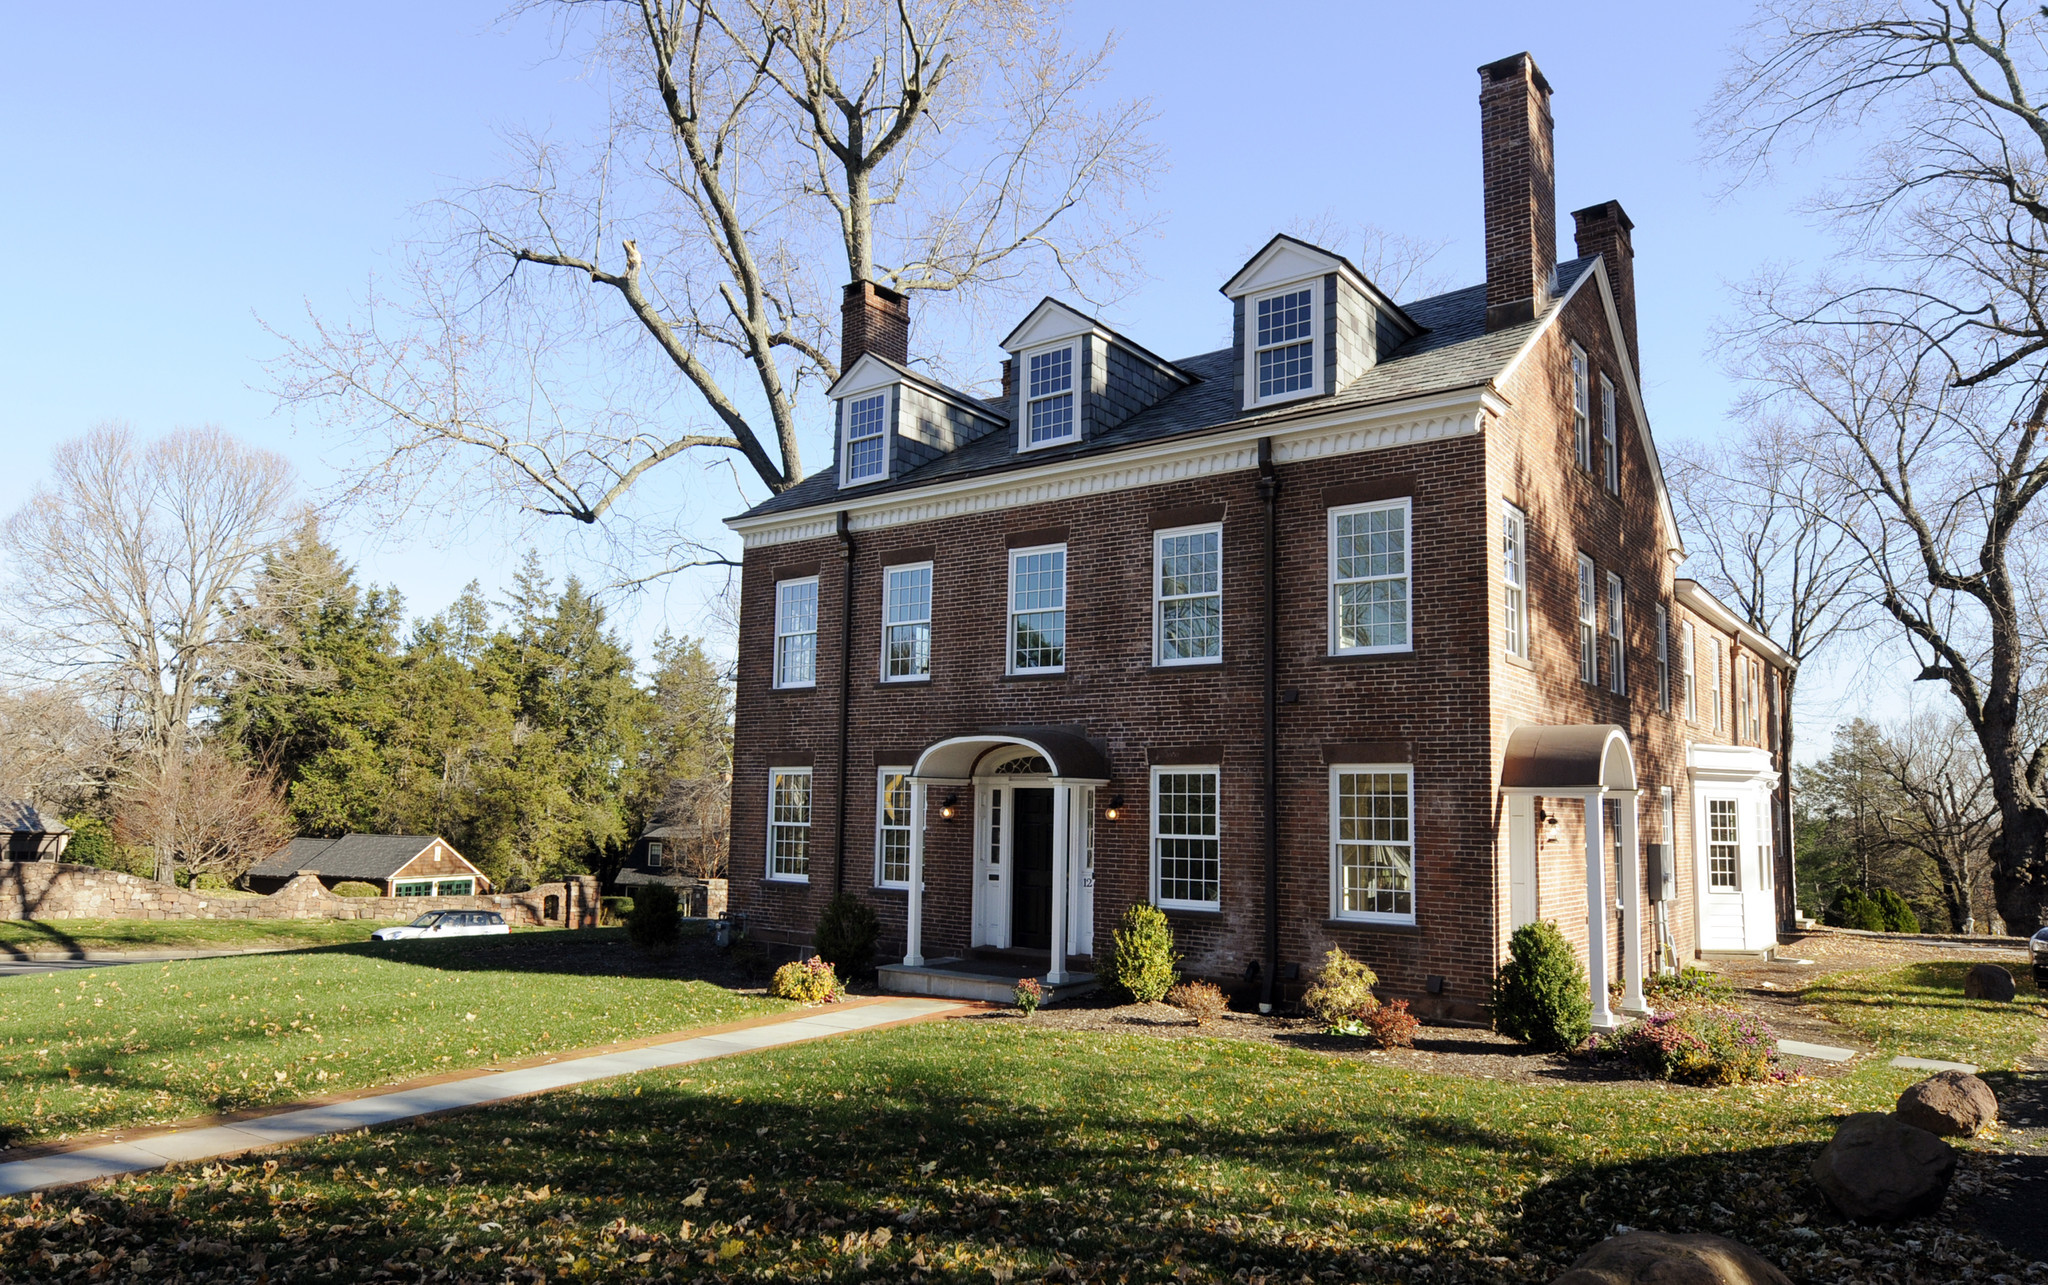 oldest house in hartford s west end sold well below list price oldest house in hartford s west end sold well below list price hartford courant